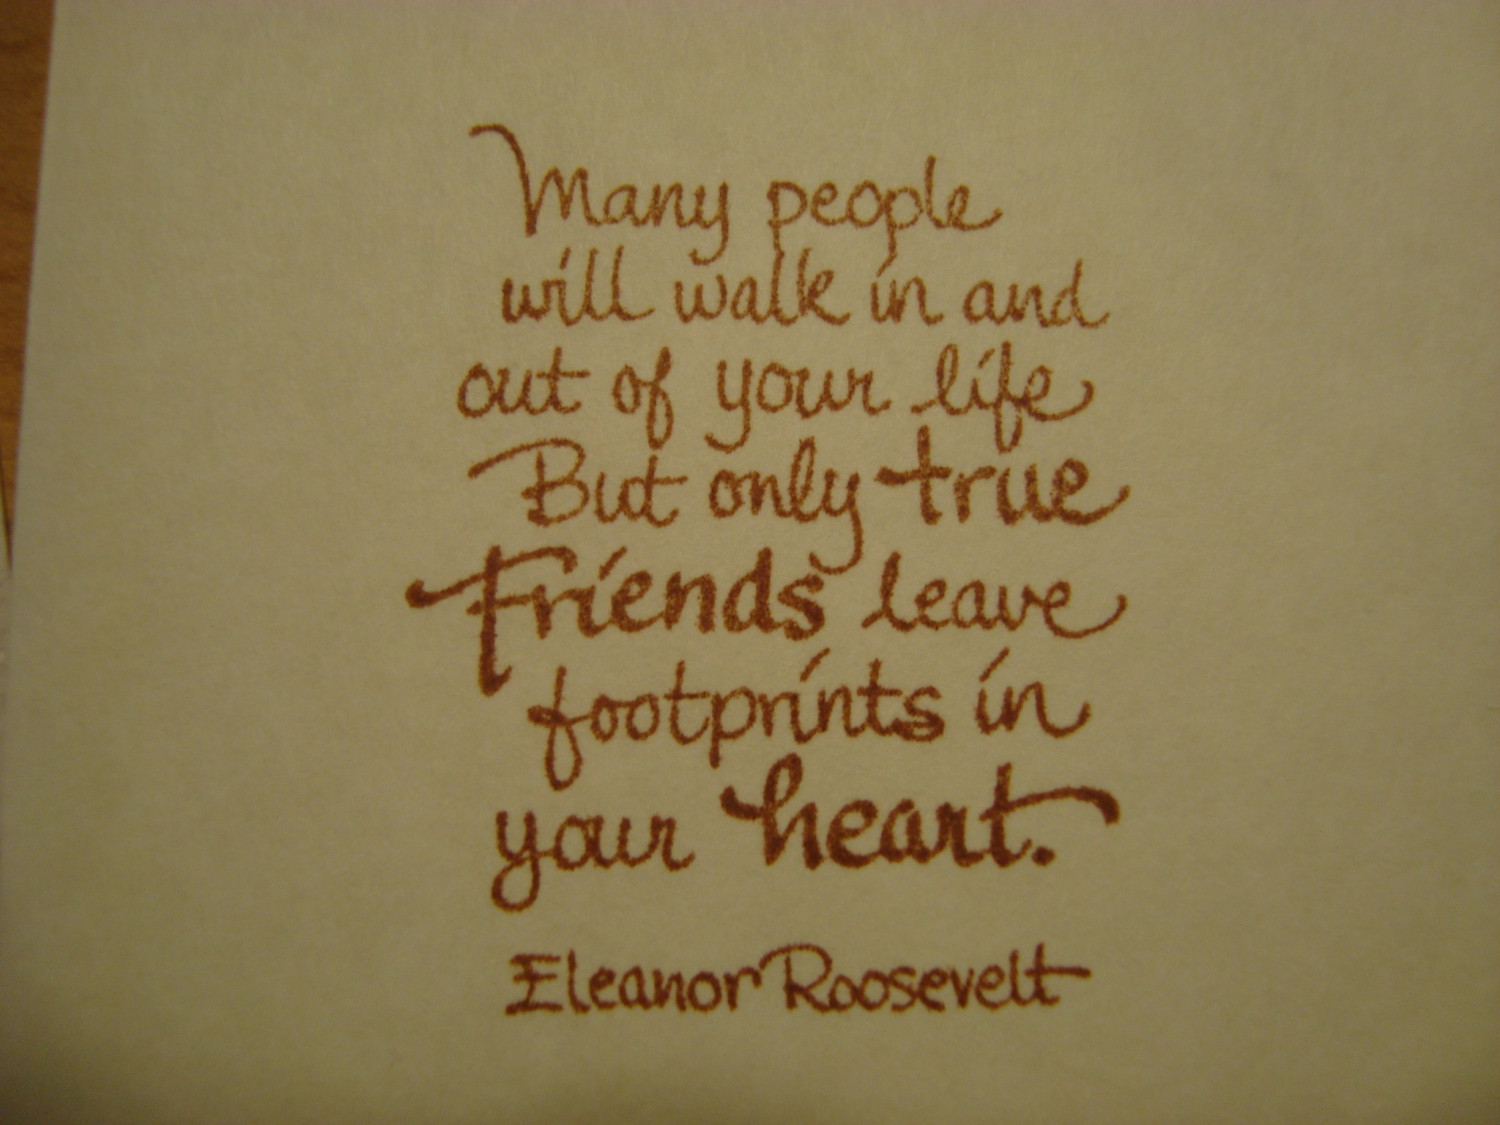 Eleanor Roosevelt quote #2